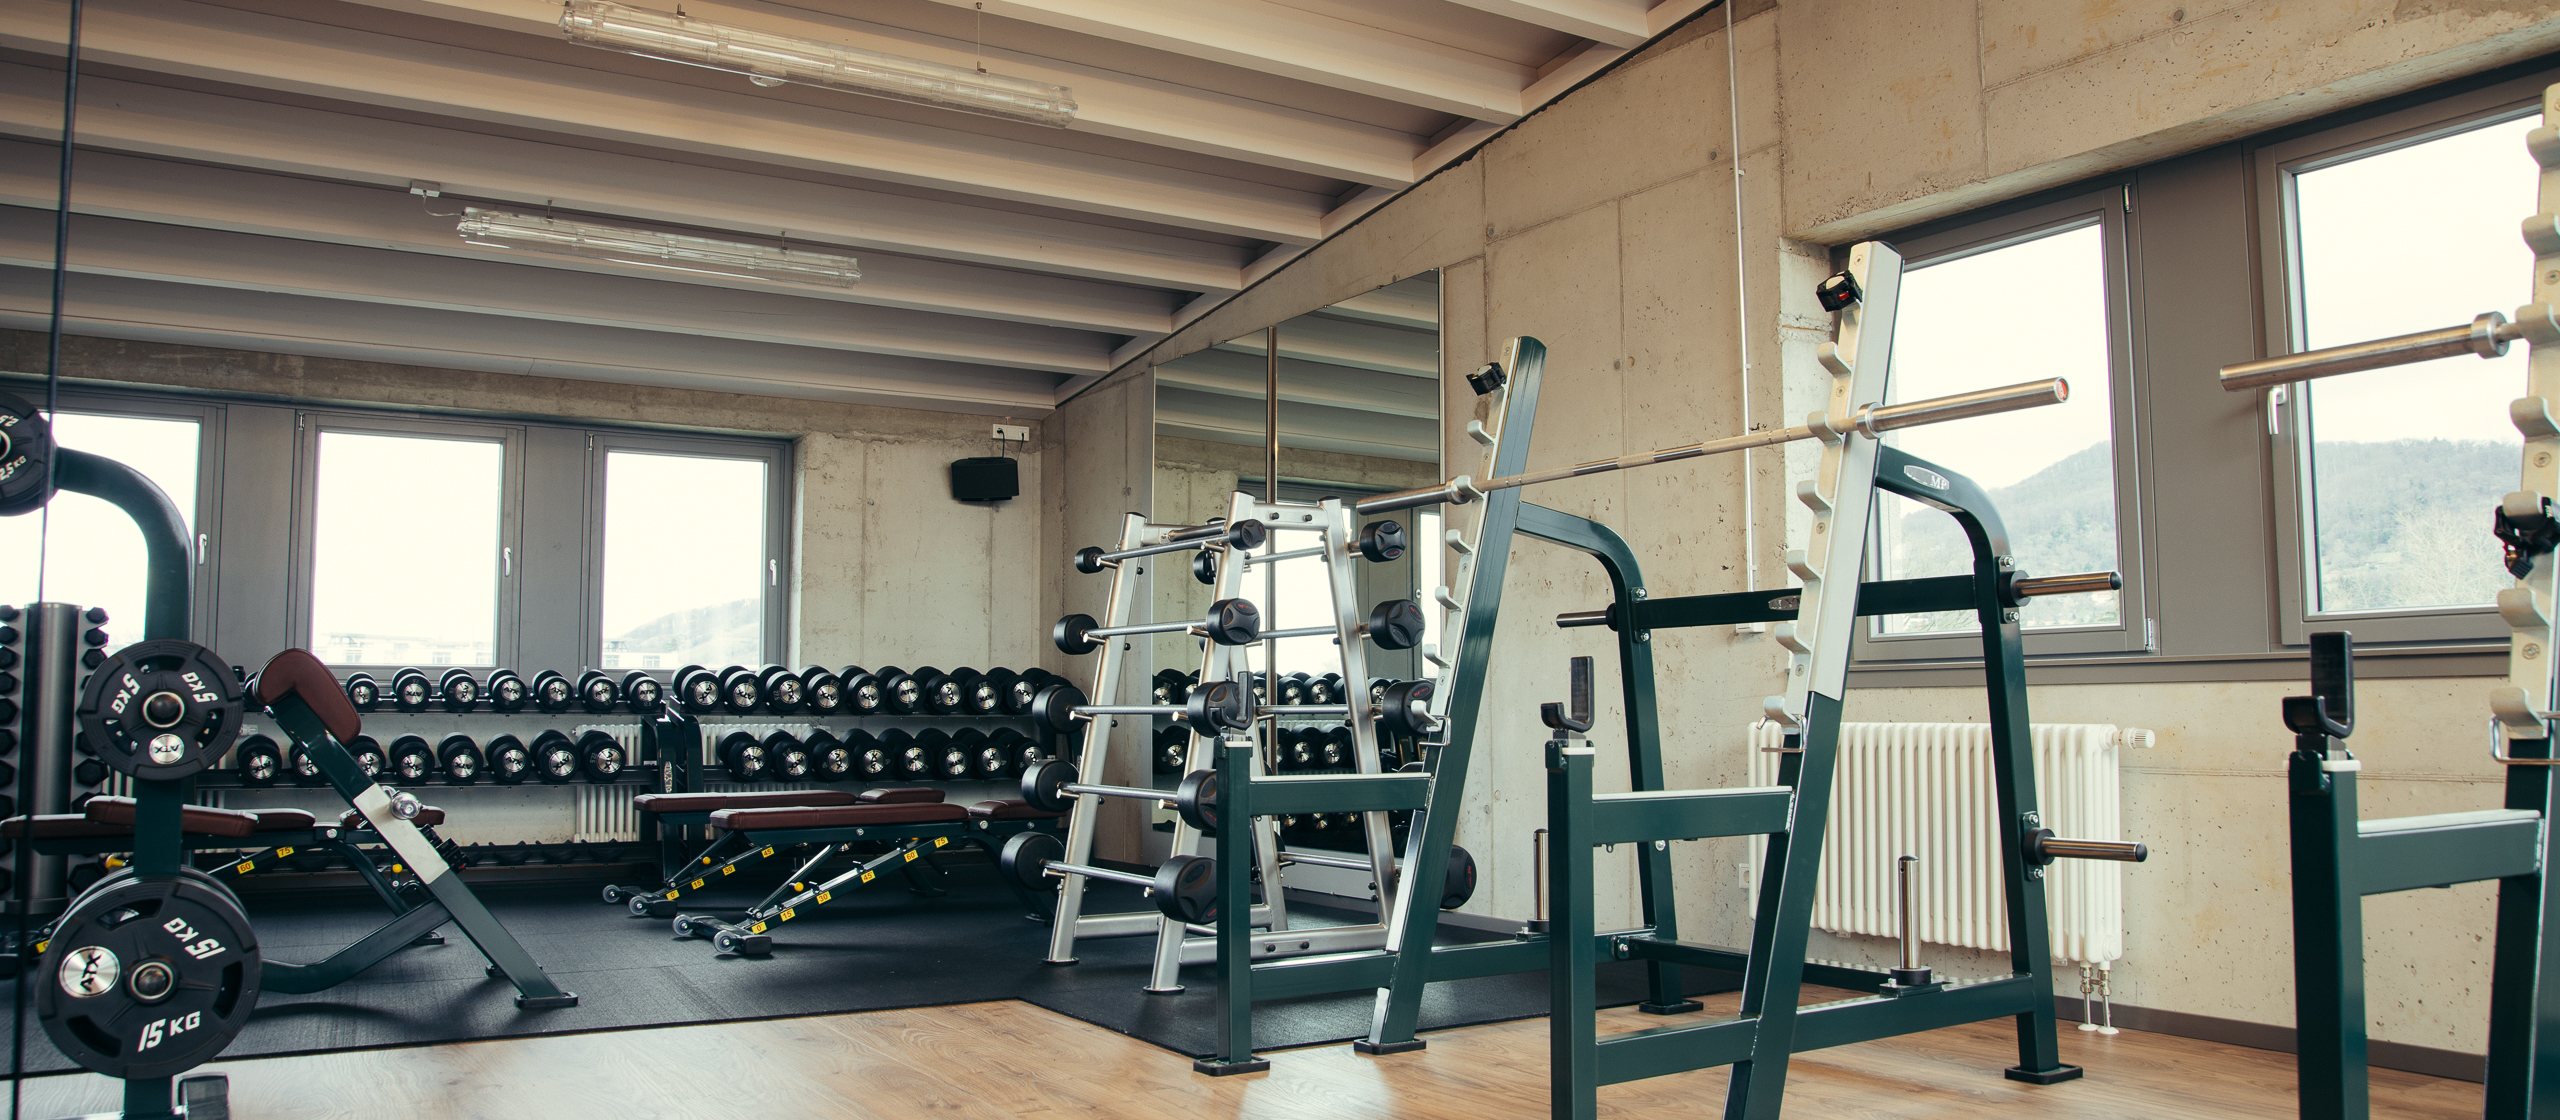 private fitness Fitnesstrainer allows you to compare prices with various personal trainers in your area, read reviews and book a personal trainer online.